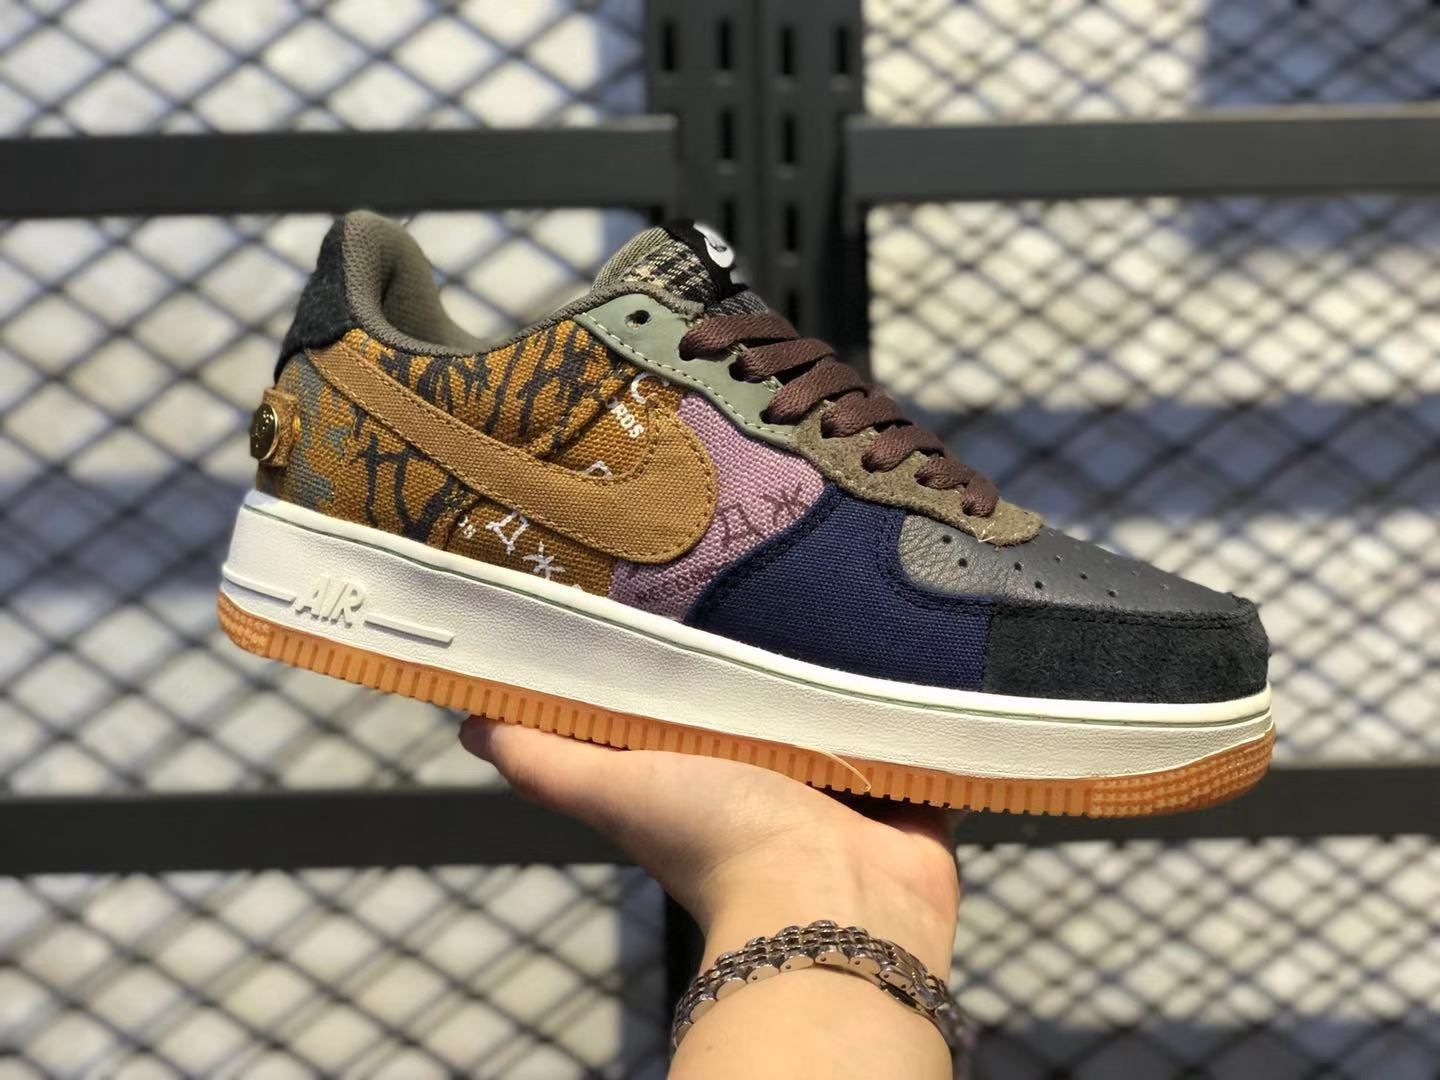 Hot Sale Nike Air Force 1 Low Travis Scott Multicolor/Muted Bronze CN2405-900